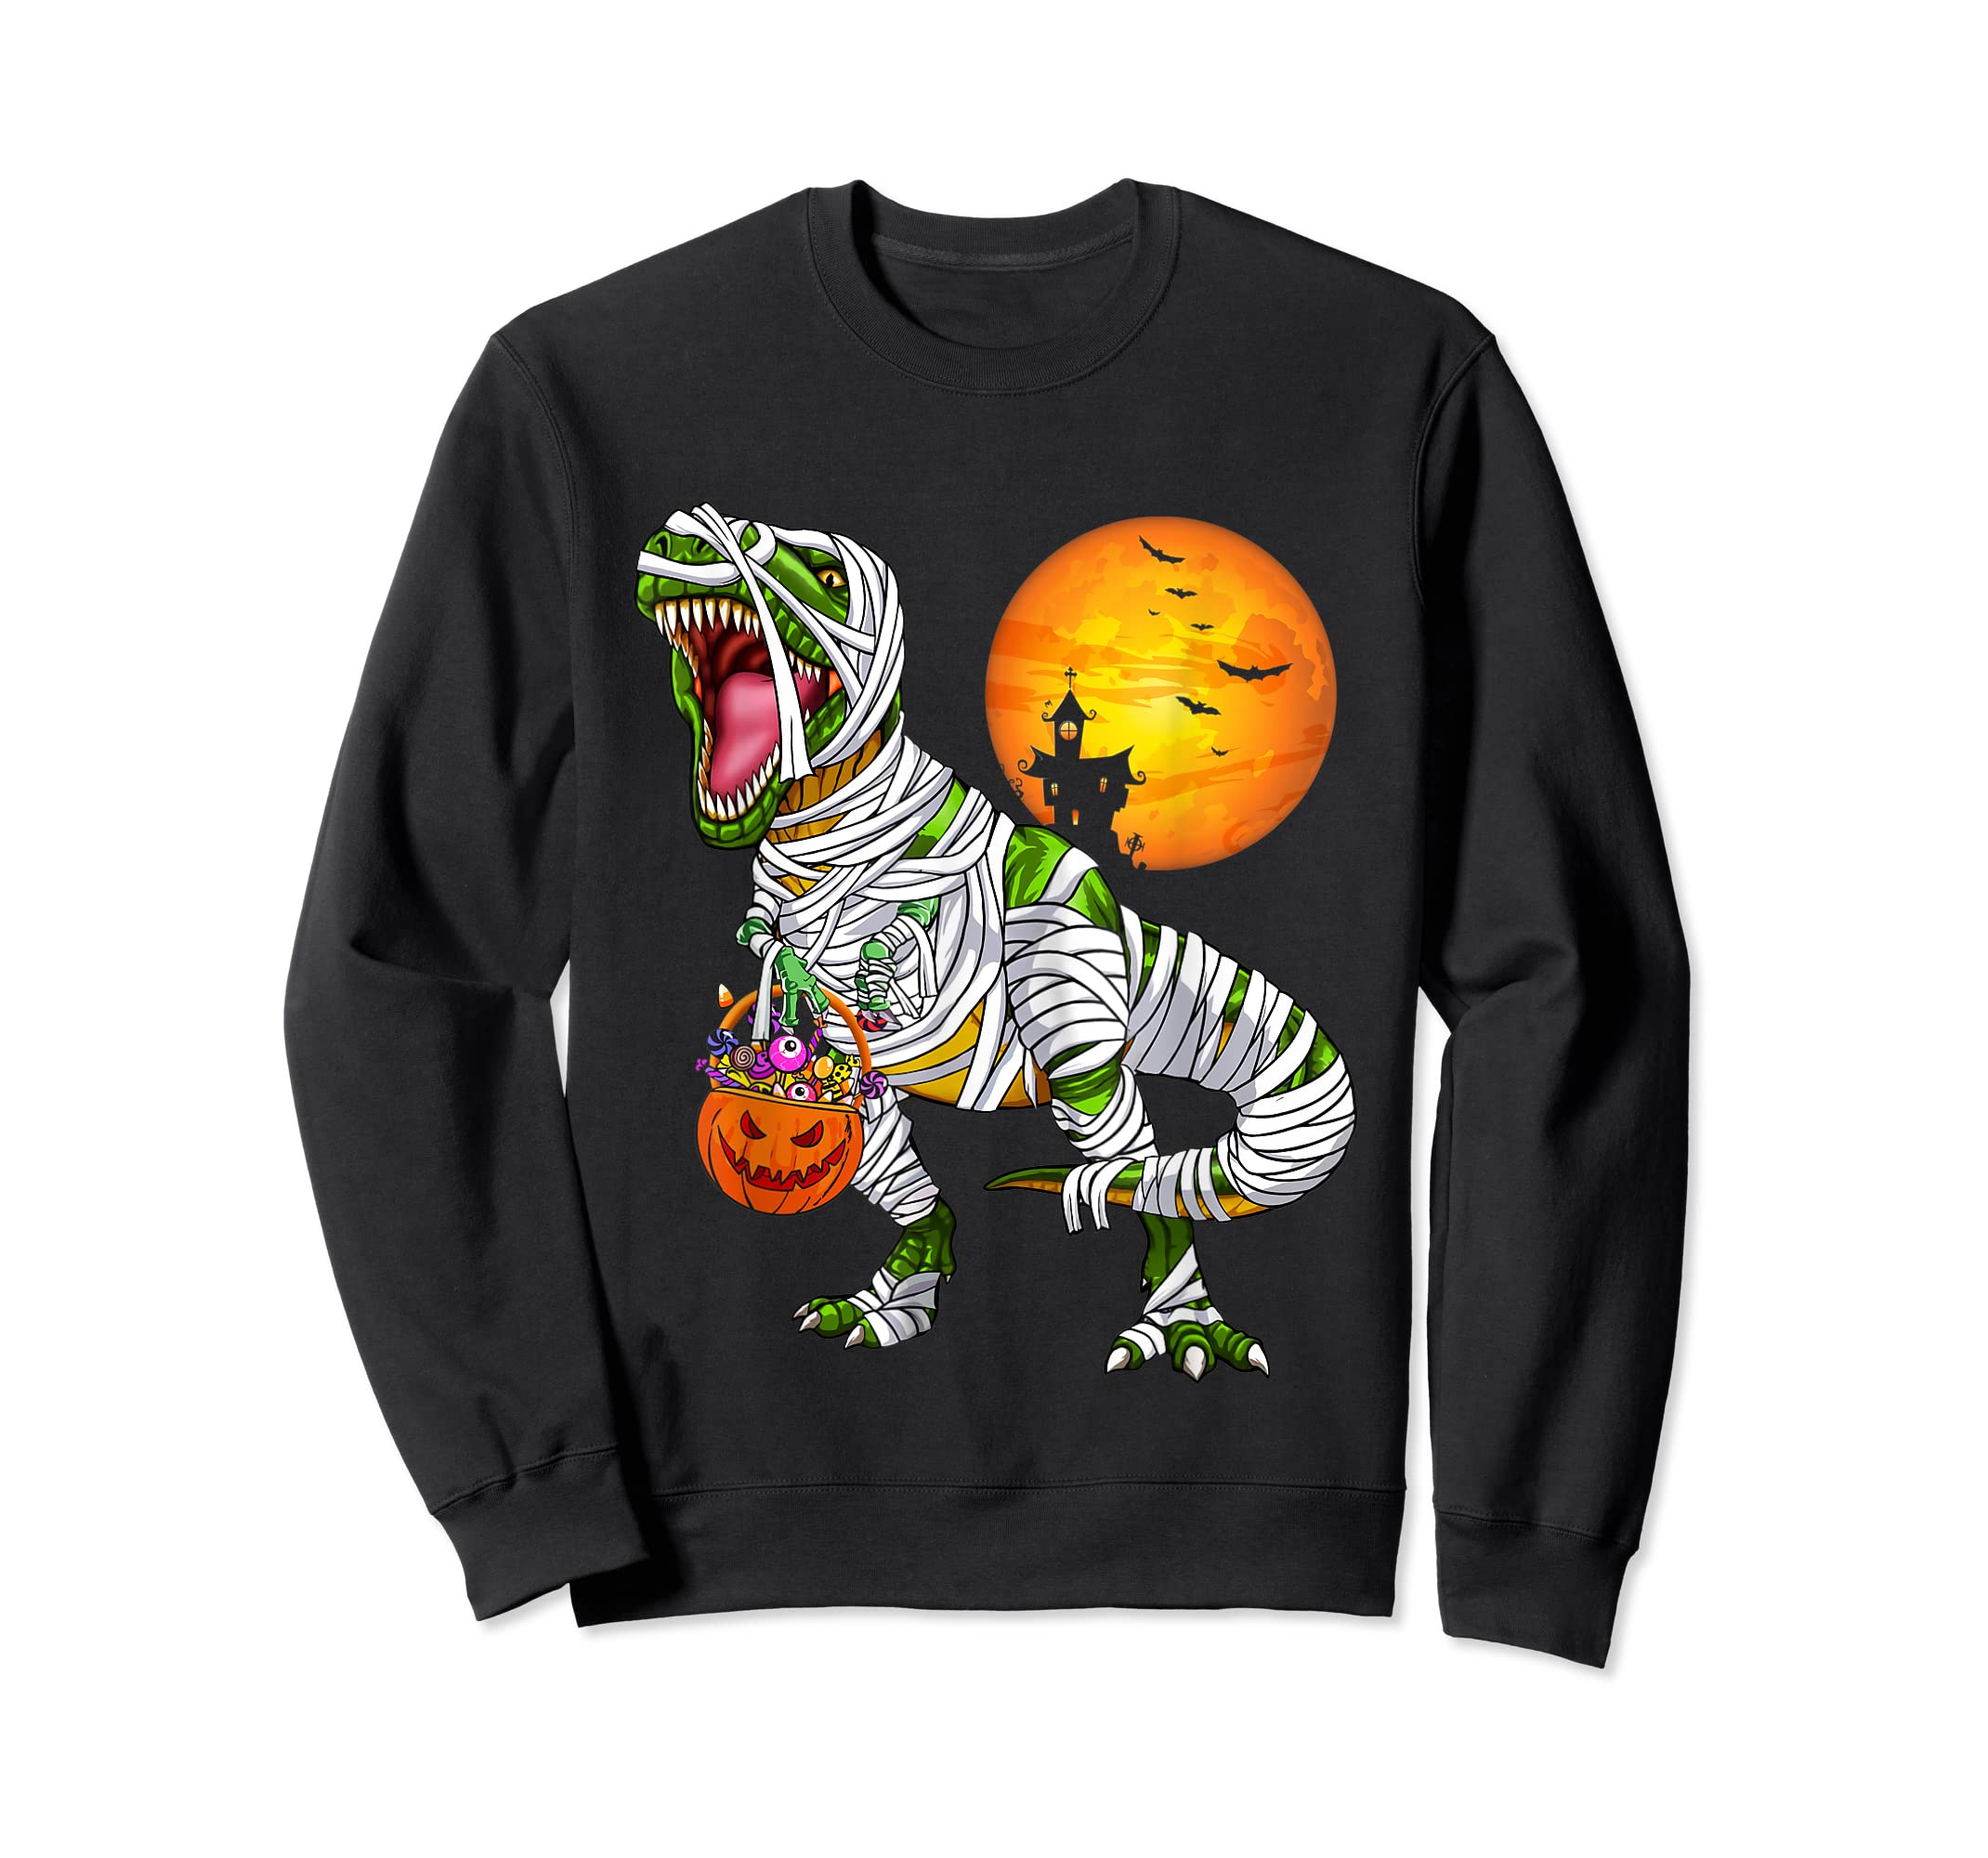 Halloween Gift For Boys Kids Dinosaur T rex Mummy Pumpkin T-Shirt-Sweatshirt-Black